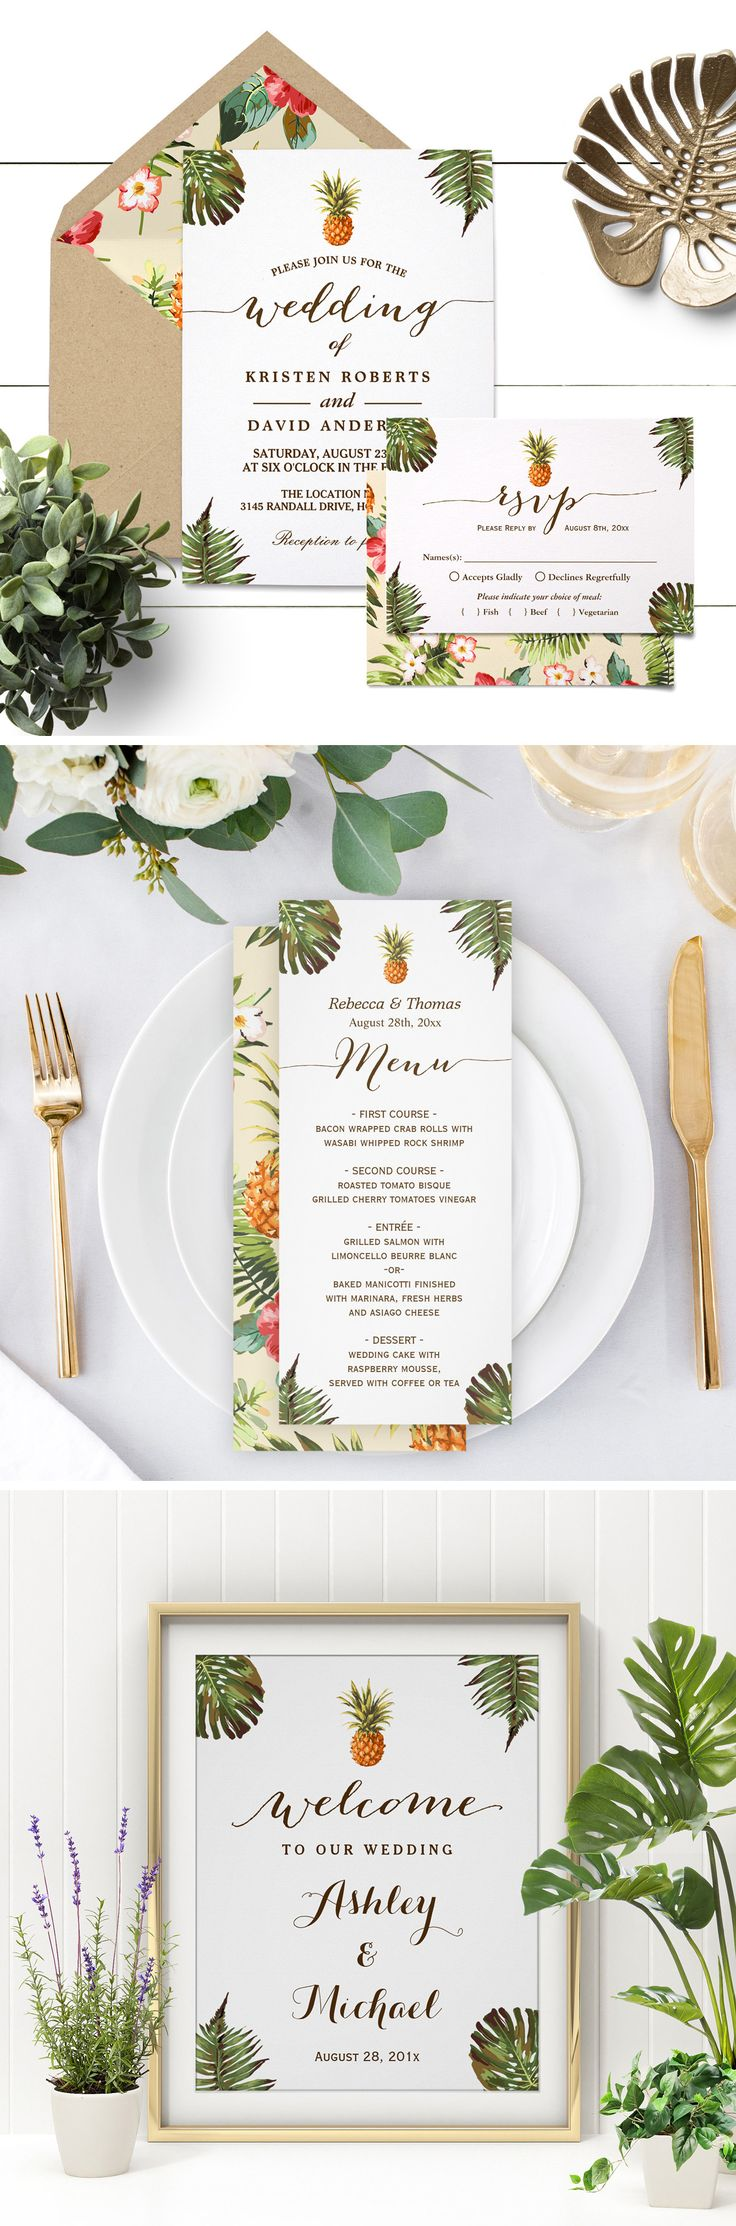 Planning a destination wedding in summer season? This Tropical Leaves Pineapple Luau Wedding Invitation Suite sets the Hawaiian and relaxing wedding tones perfectly for this summer trend.